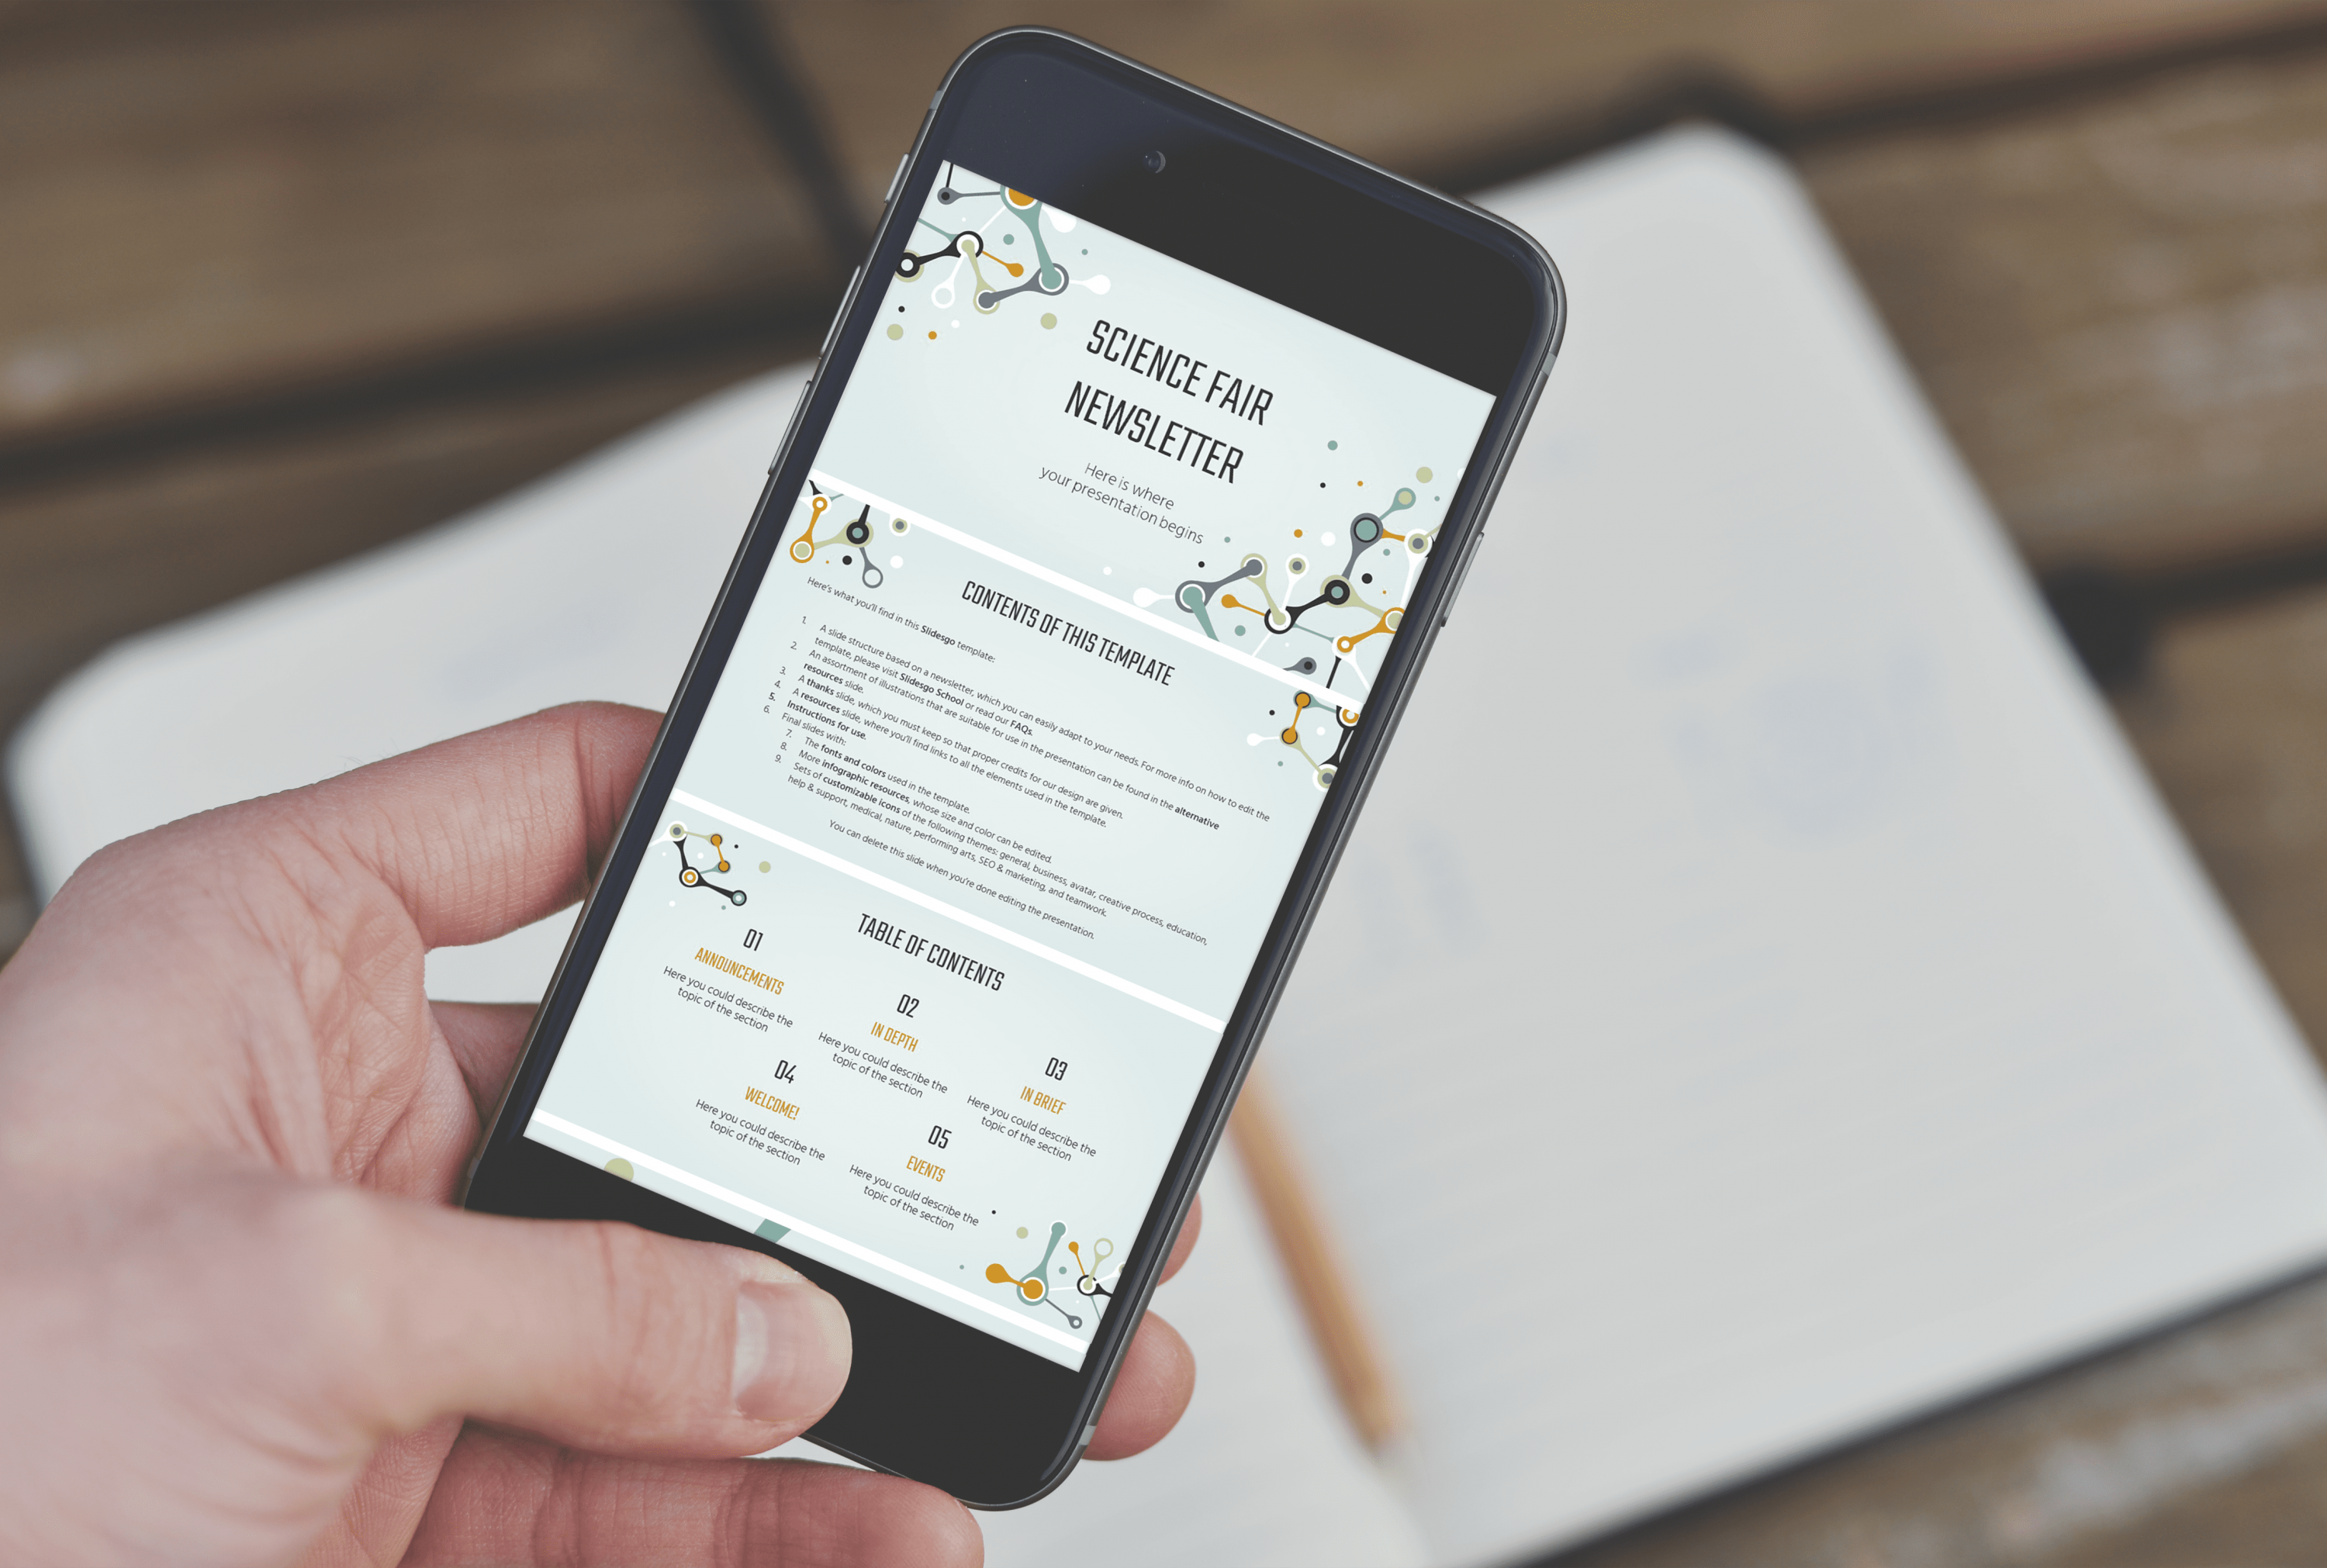 Free Science Fair Newsletter Powerpoint Template by MasterBundles mobile.